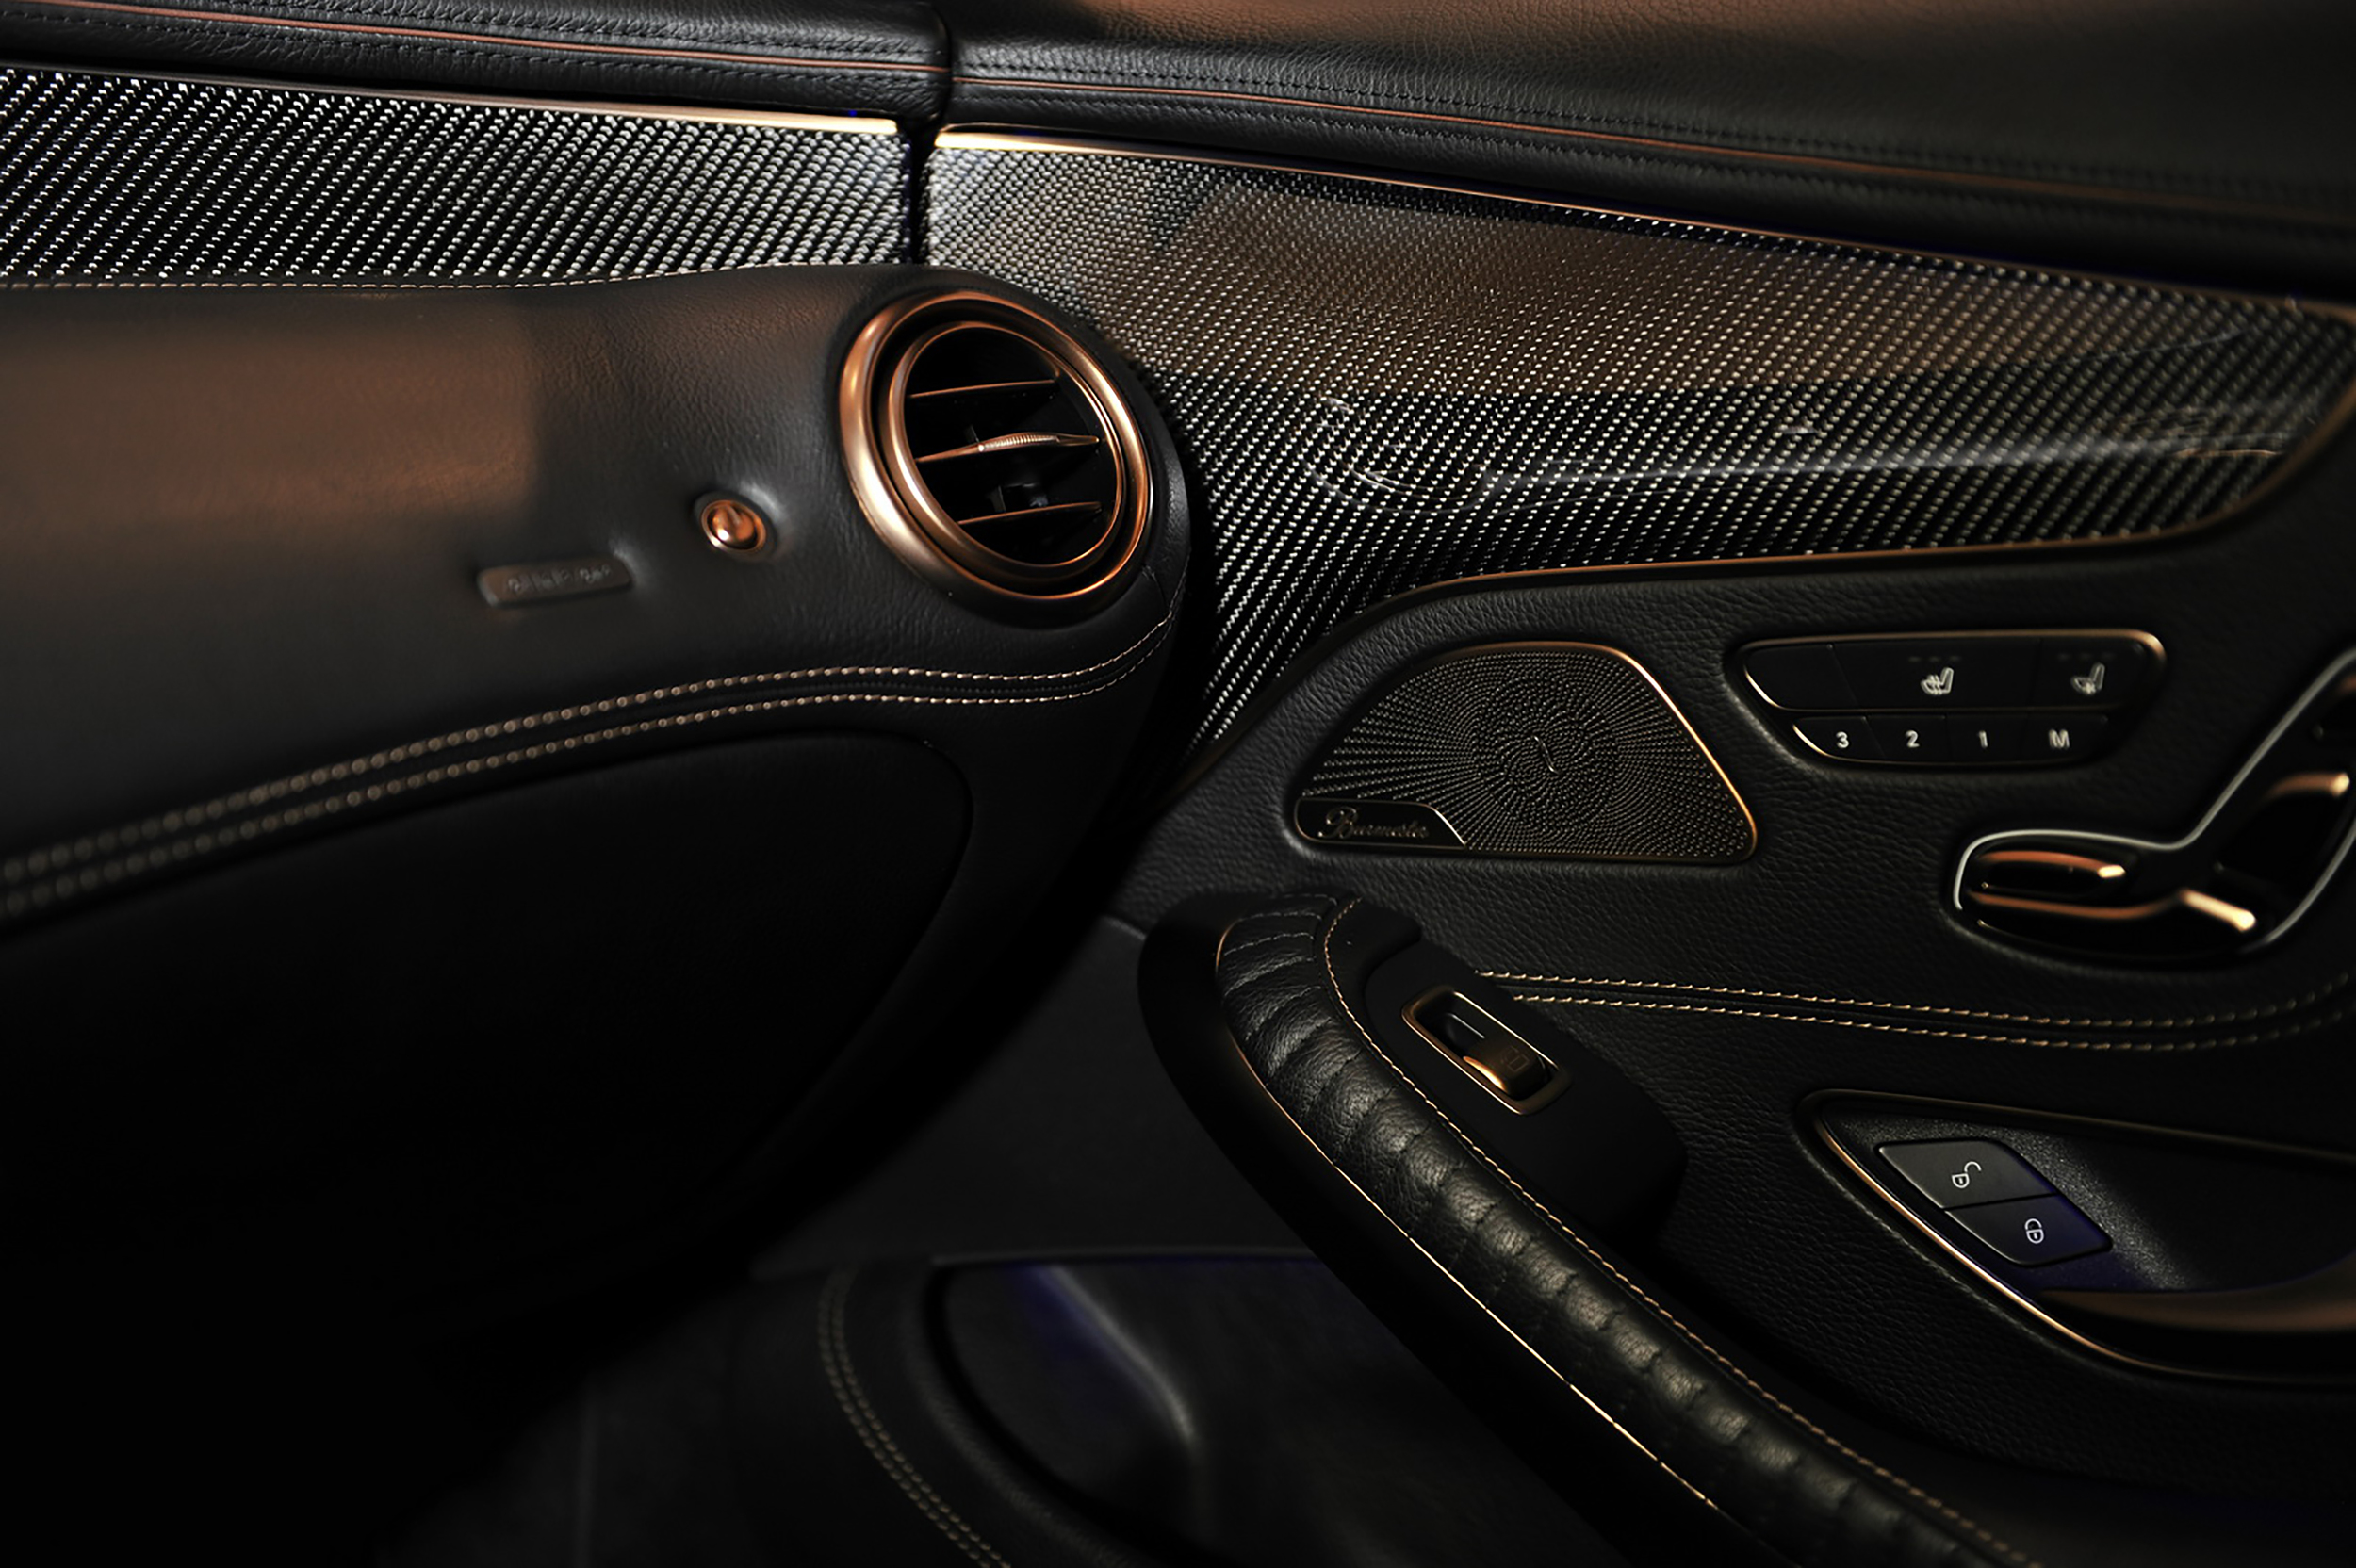 ' ' from the web at 'http://www.blogcdn.com/slideshows/images/slides/335/951/3/S3359513/slug/l/brabus-s-class-coupe-33-1.jpg'